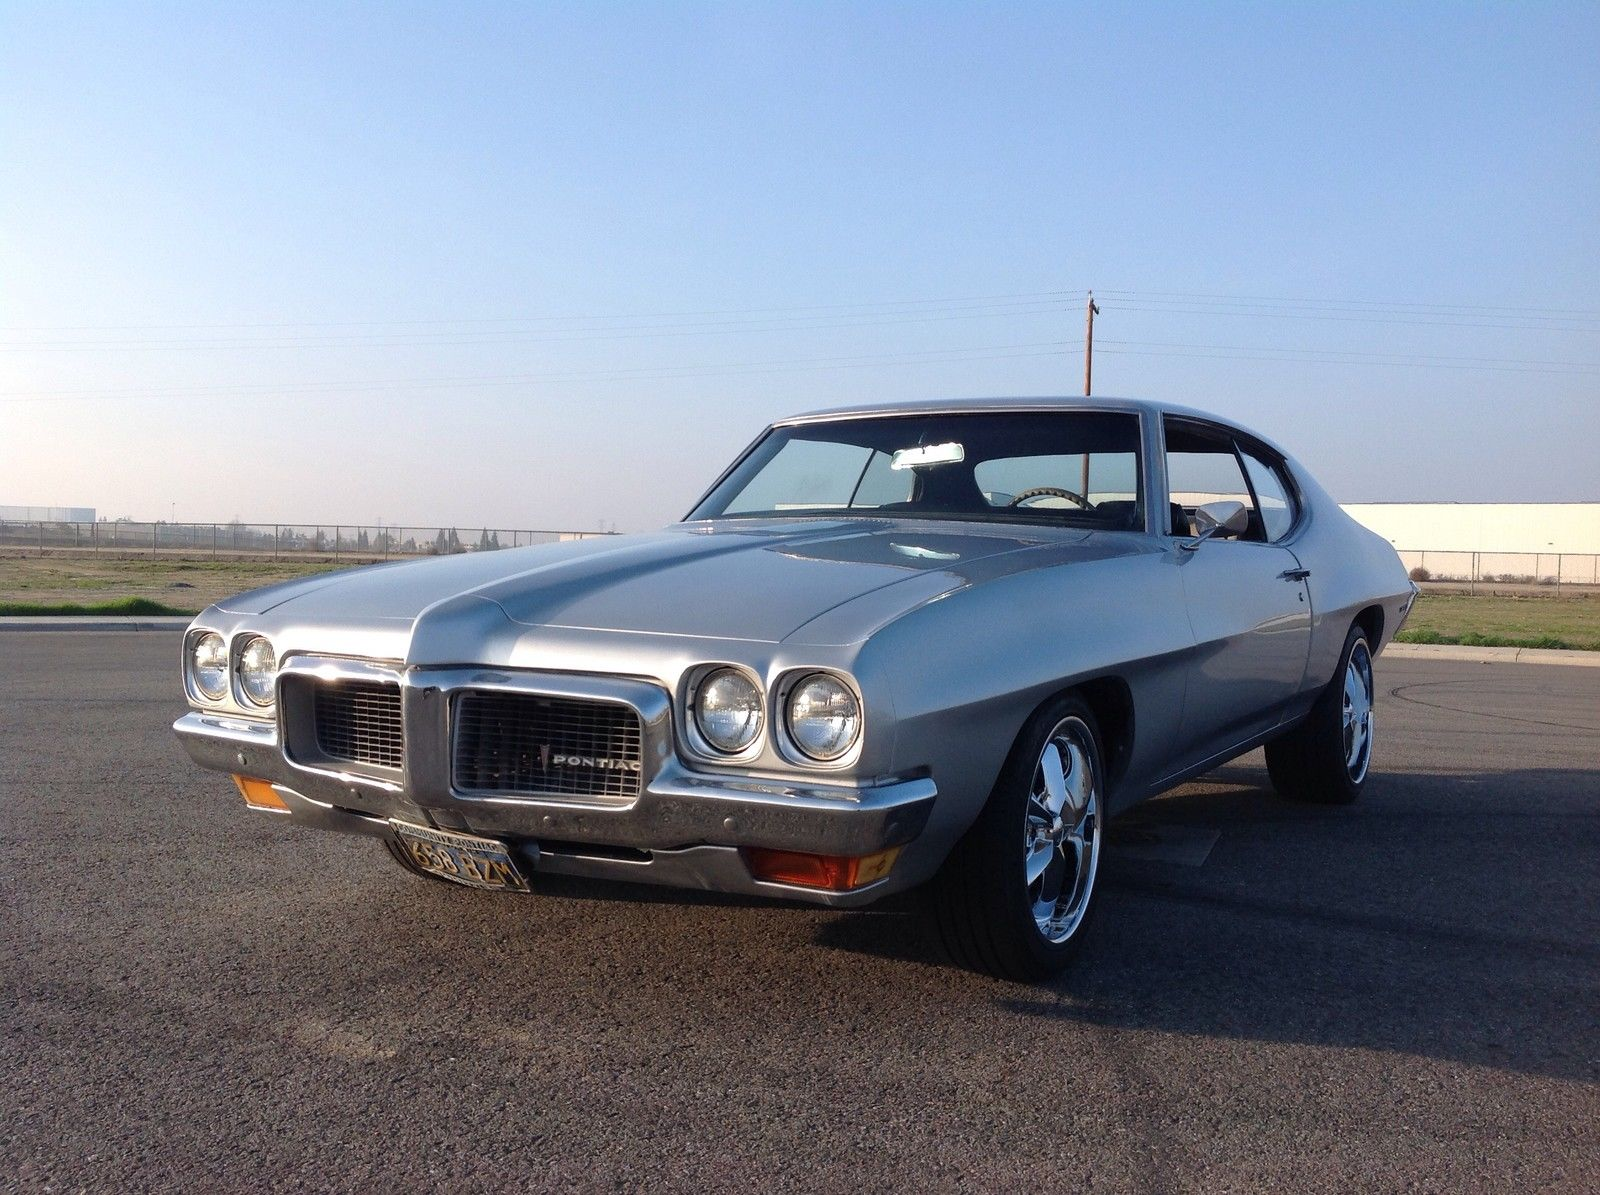 1970 Pontiac Lemans Gto Tempest For Sale In Bakersfield California United States